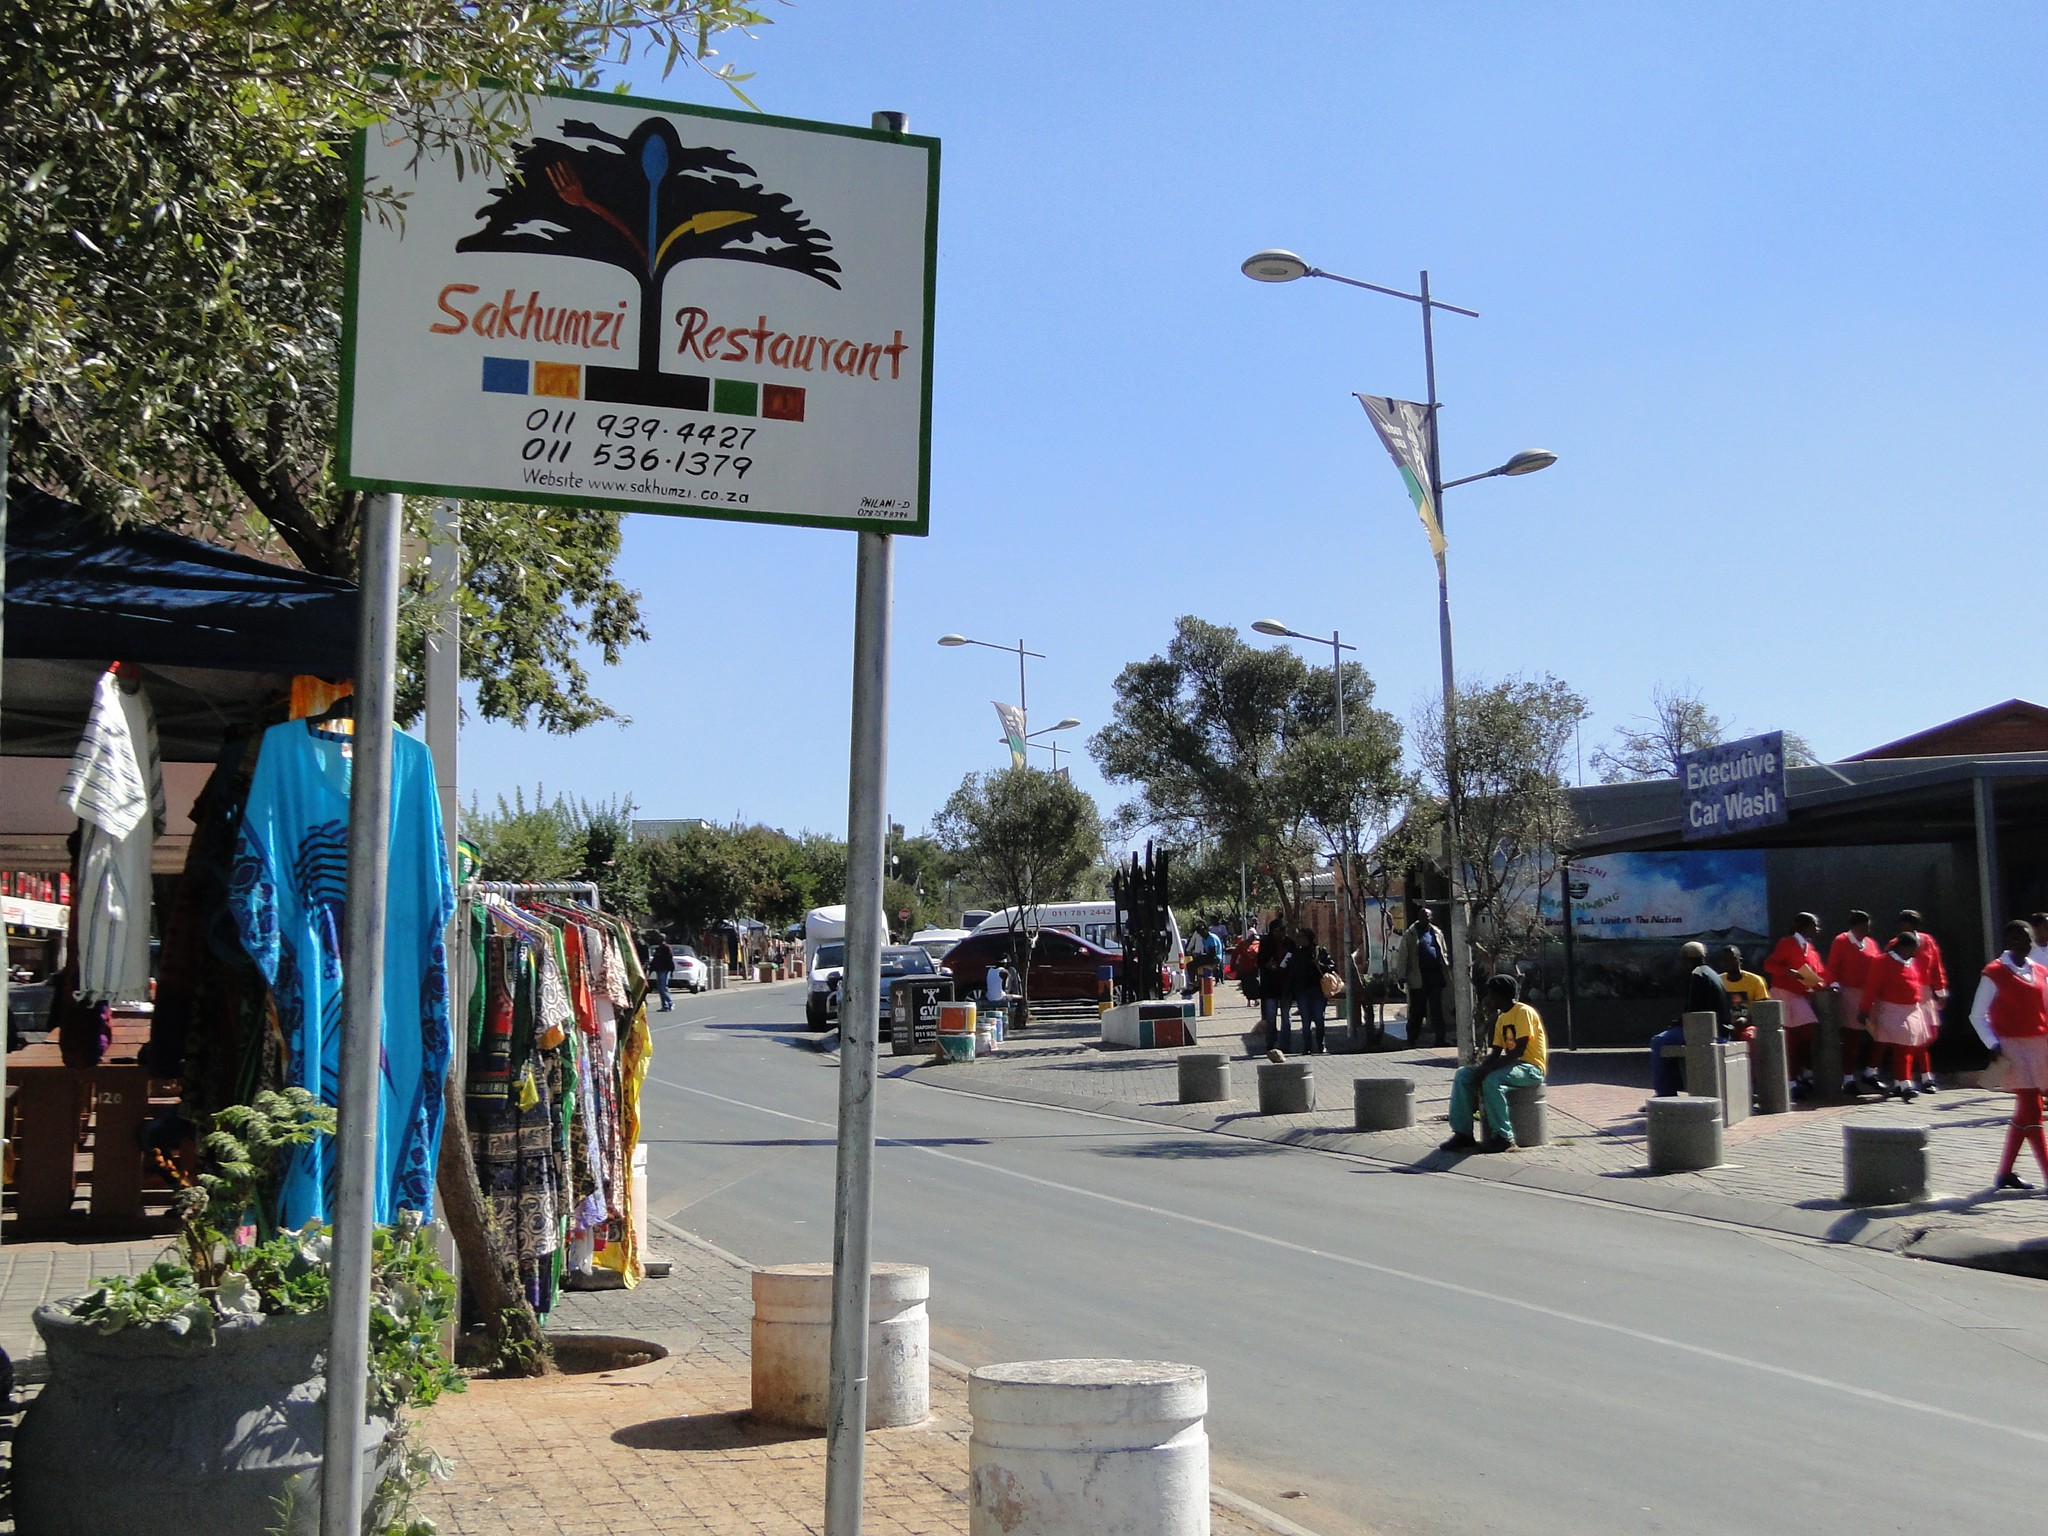 The colorful Vilakazi Street outside Sakhumzi Restaurant. Photo by Karla J. Strand. All rights reserved.